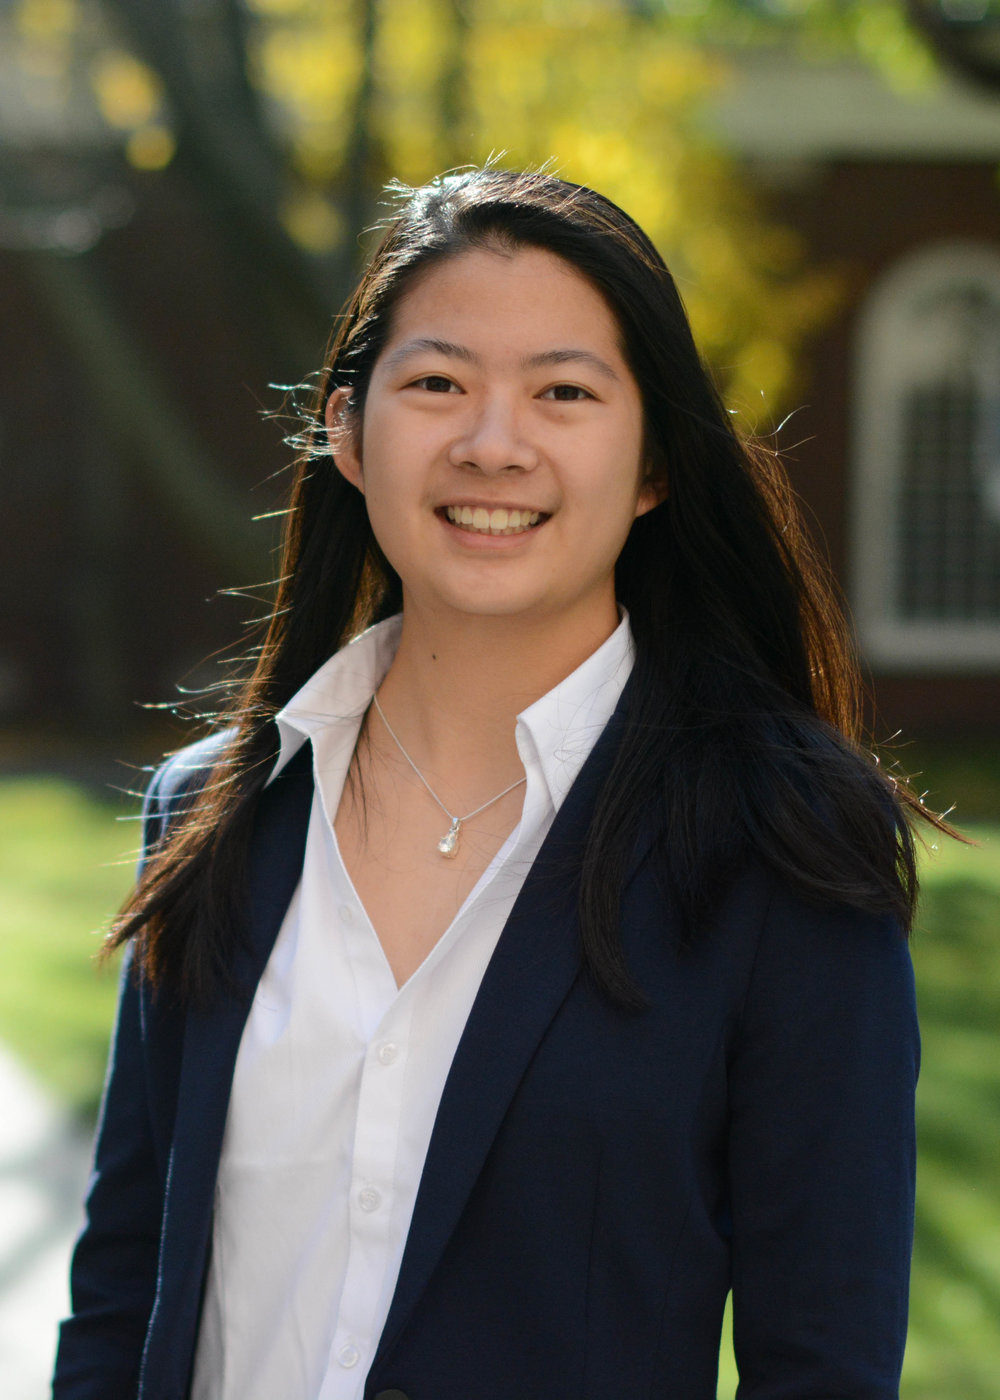 REBECCA CHEN '20 | MANAGER - Raised in a variety of places but most prominently in San Francisco, Rebecca is a freshman currently studying Economics and Computer Science. Outside of HSA, you can find her working as an associate in the Harvard Financial Analysts Club and playing for the competitive Club Tennis team. She has come up with a plethora of novel business ideas and although she hasn't struck it rich yet, she isn't discouraged at all.